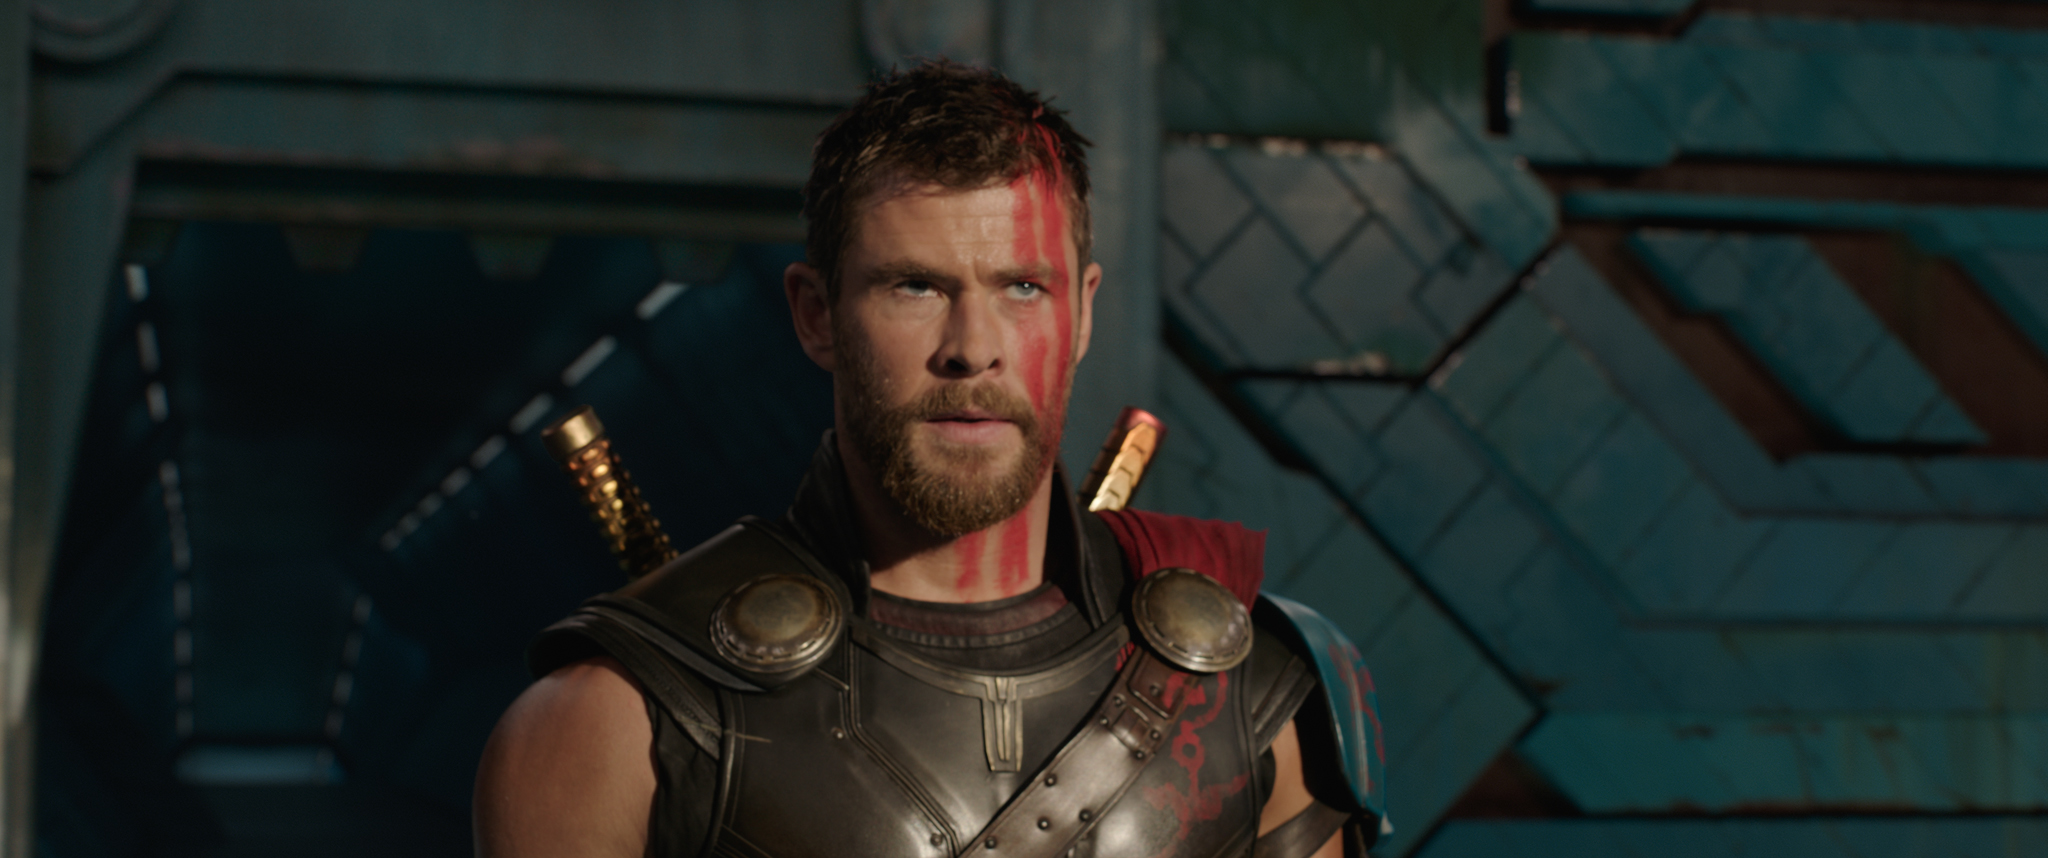 Thor might be in Guardians of the Galaxy 3, after all